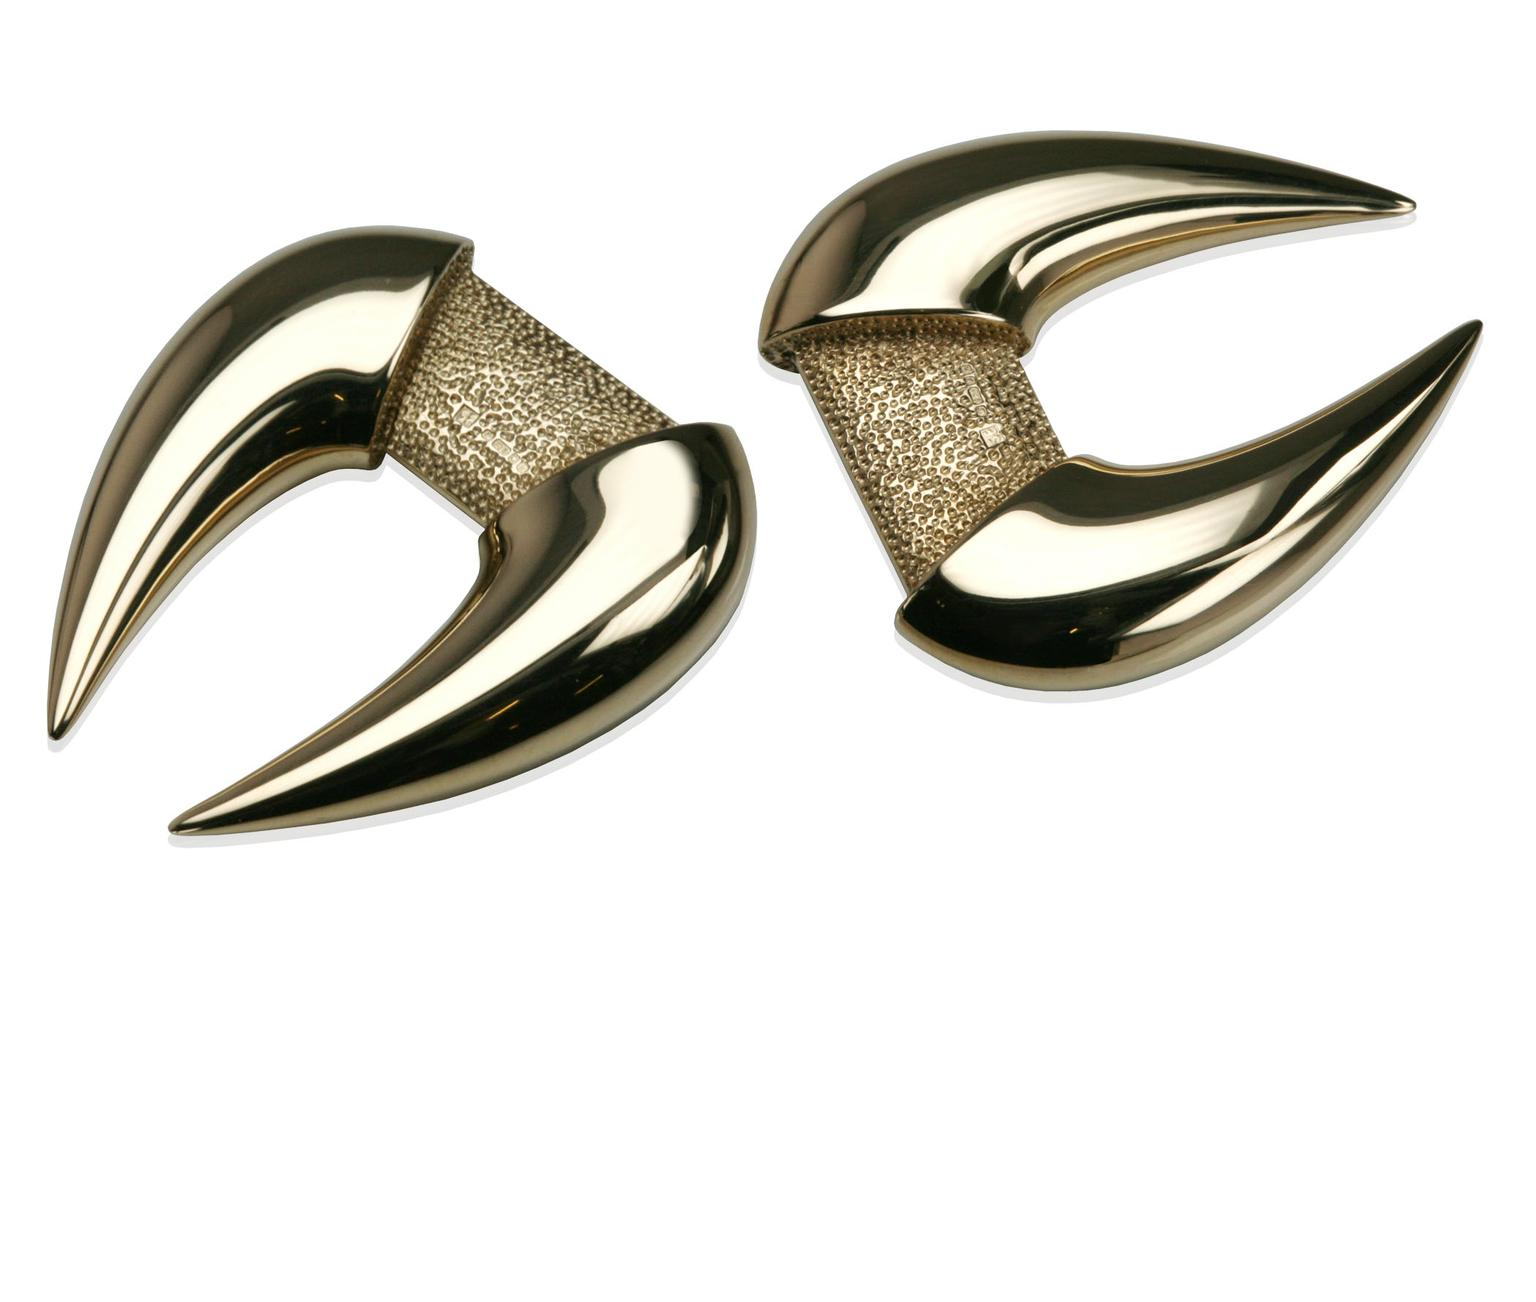 Stephen-Einhorn-Fang-Cufflinks-zoom